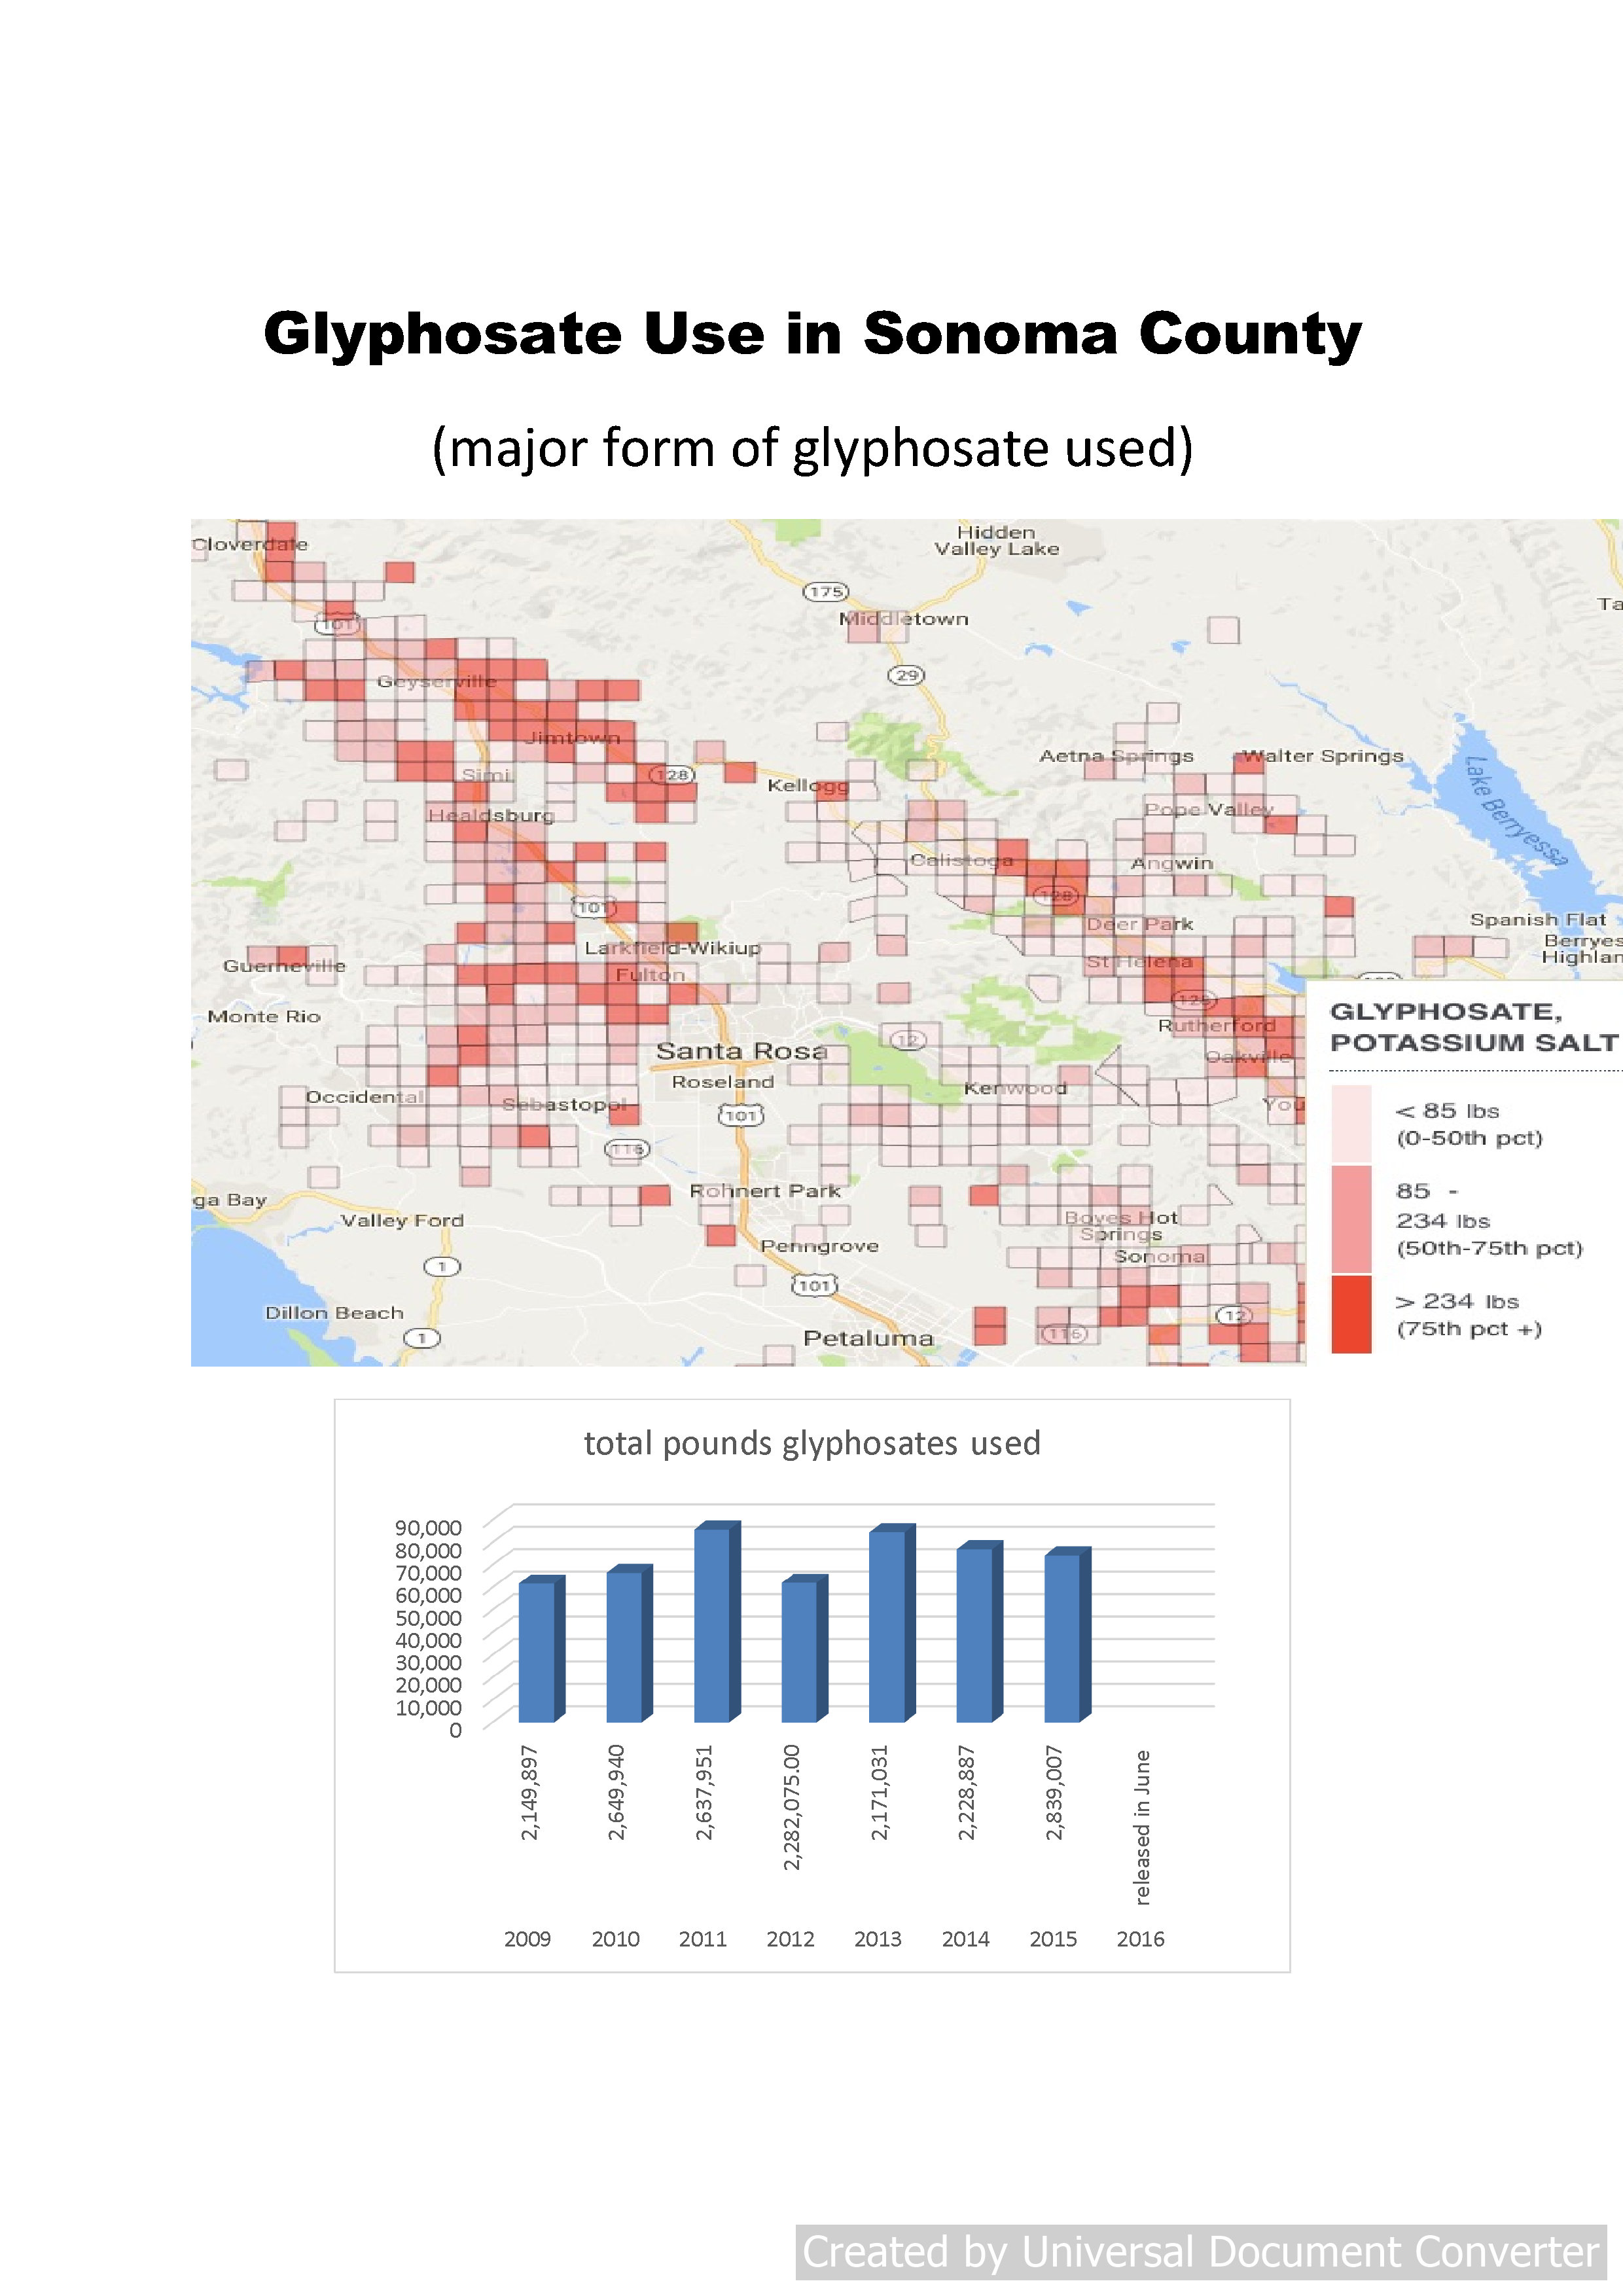 """Glypho9sate us in Sonoma COunty vineyards per CA Dept.of Pesticide Regulations. They reported 74,000 pounds of the concentrate used in 2017 while touting """"sustainabilty""""."""